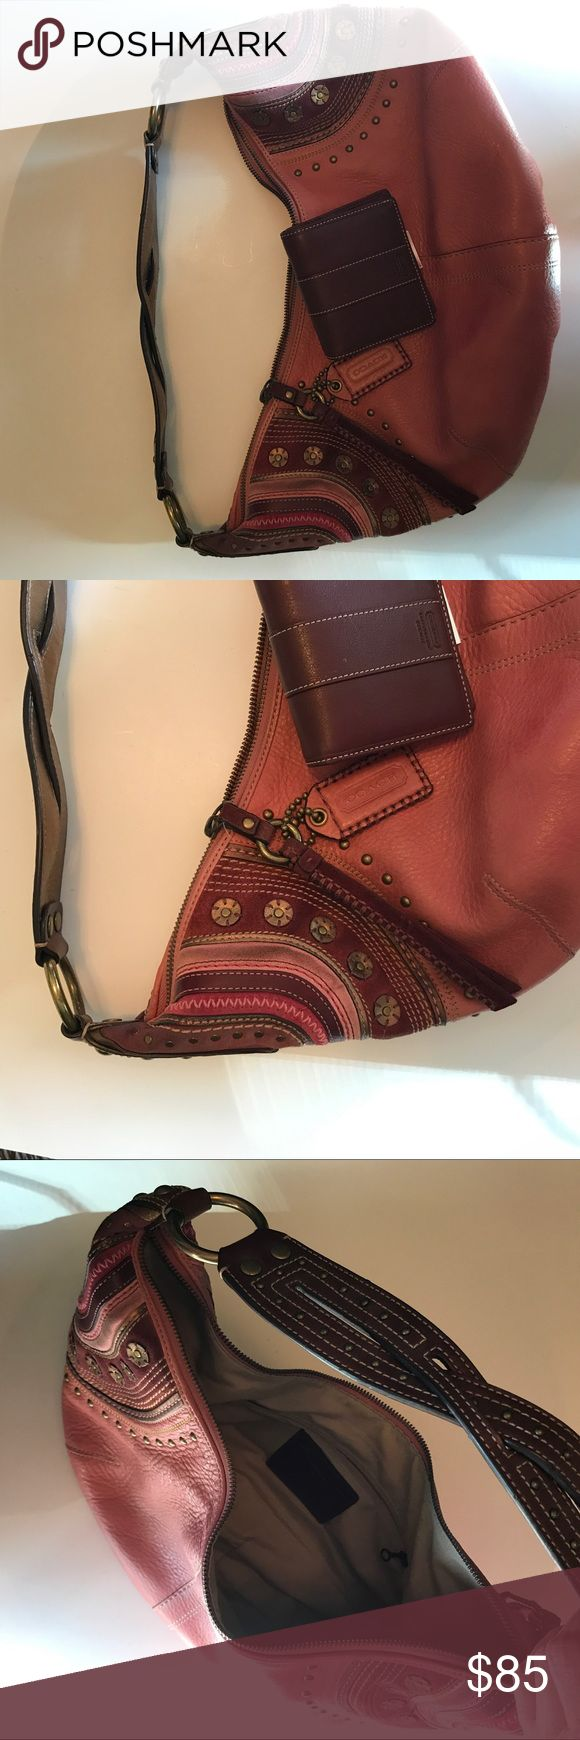 Coach Pink Leather and Suede Purse With Wallet Coach hobo bag with matching wallet. Dust bag. Coach Bags Hobos